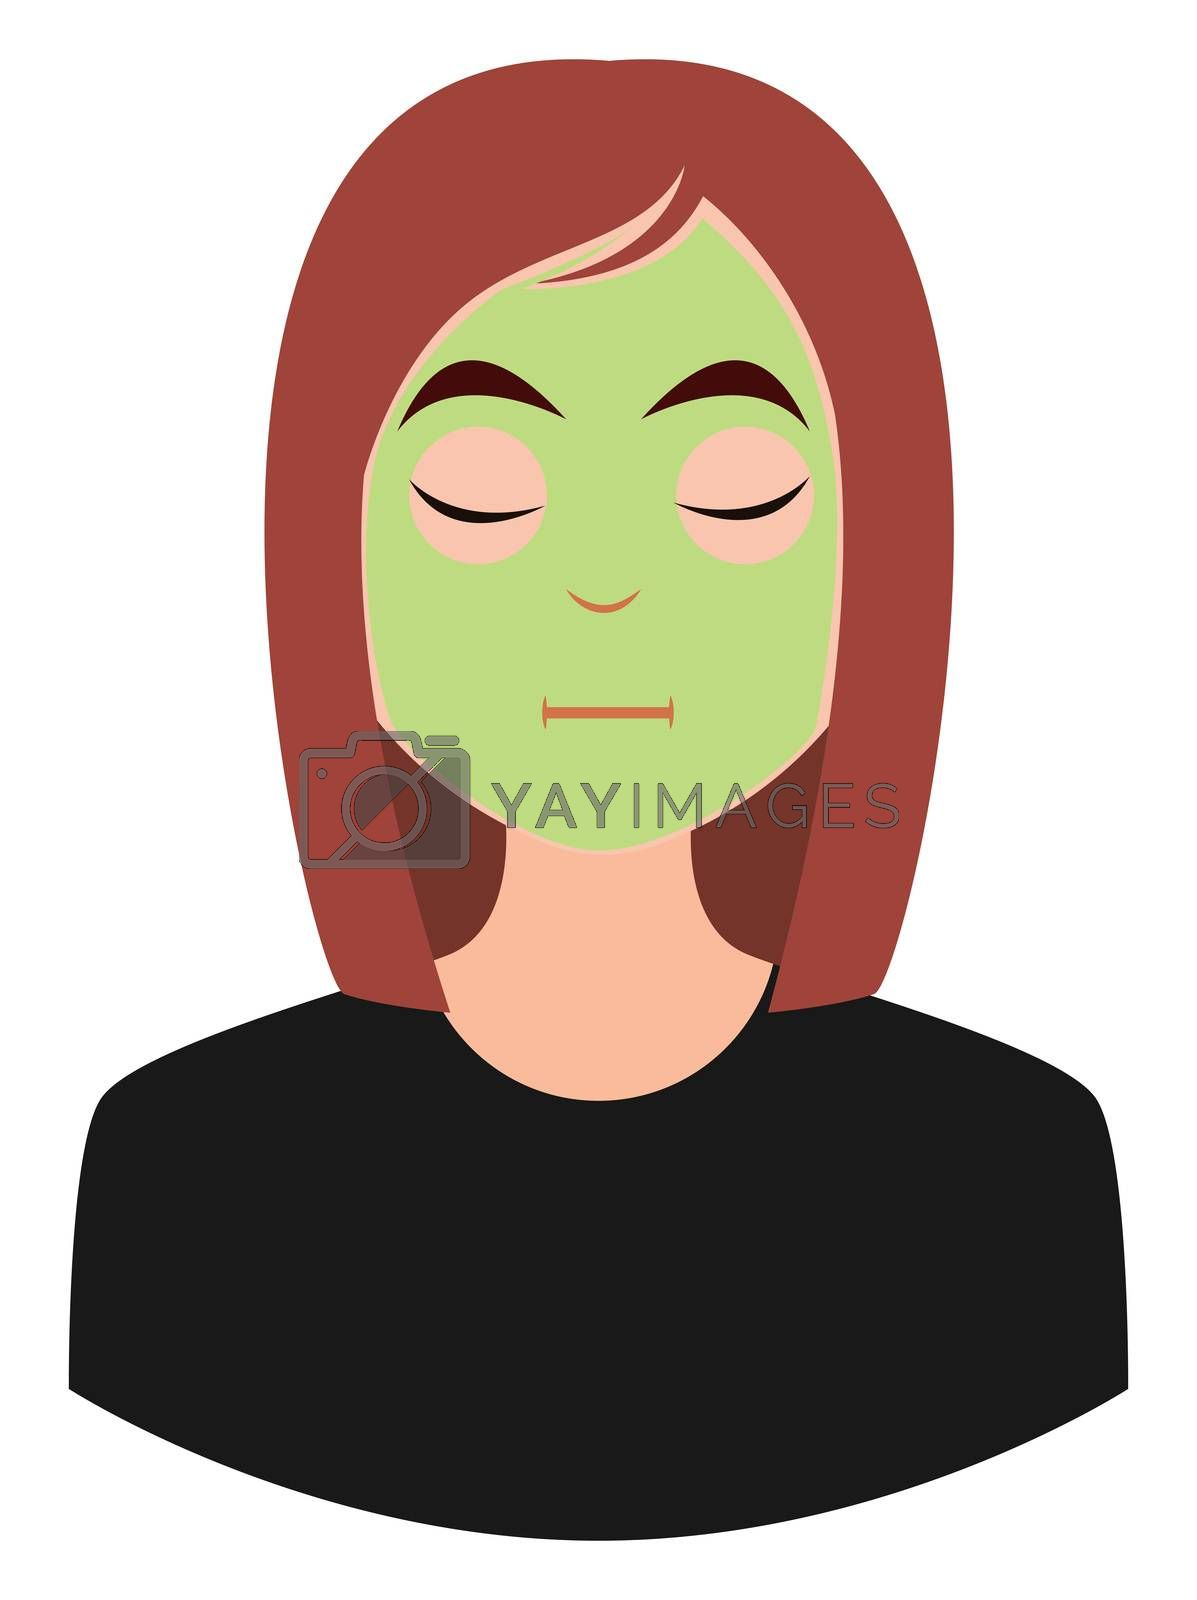 Royalty free image of Girl with face mask, illustration, vector on white background by Morphart